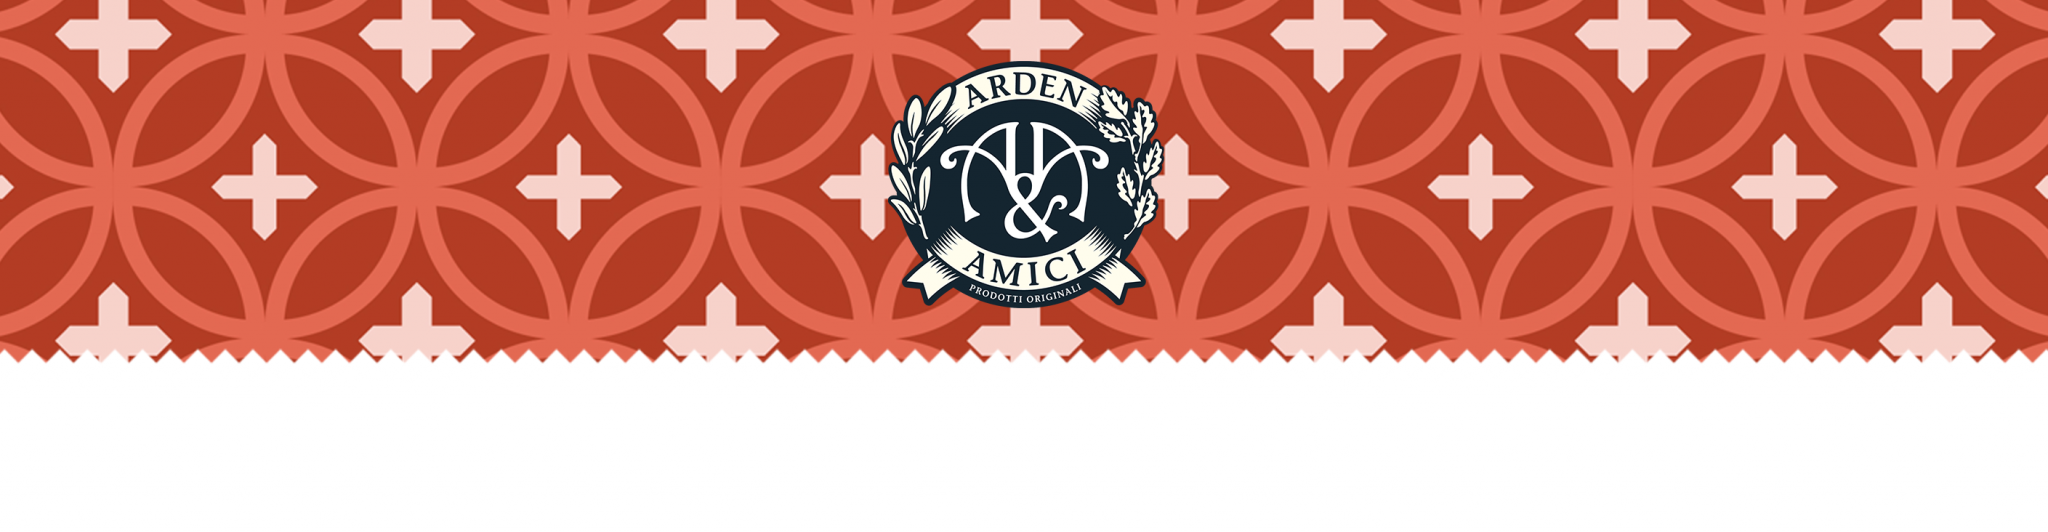 Arden and Amici header image and logo